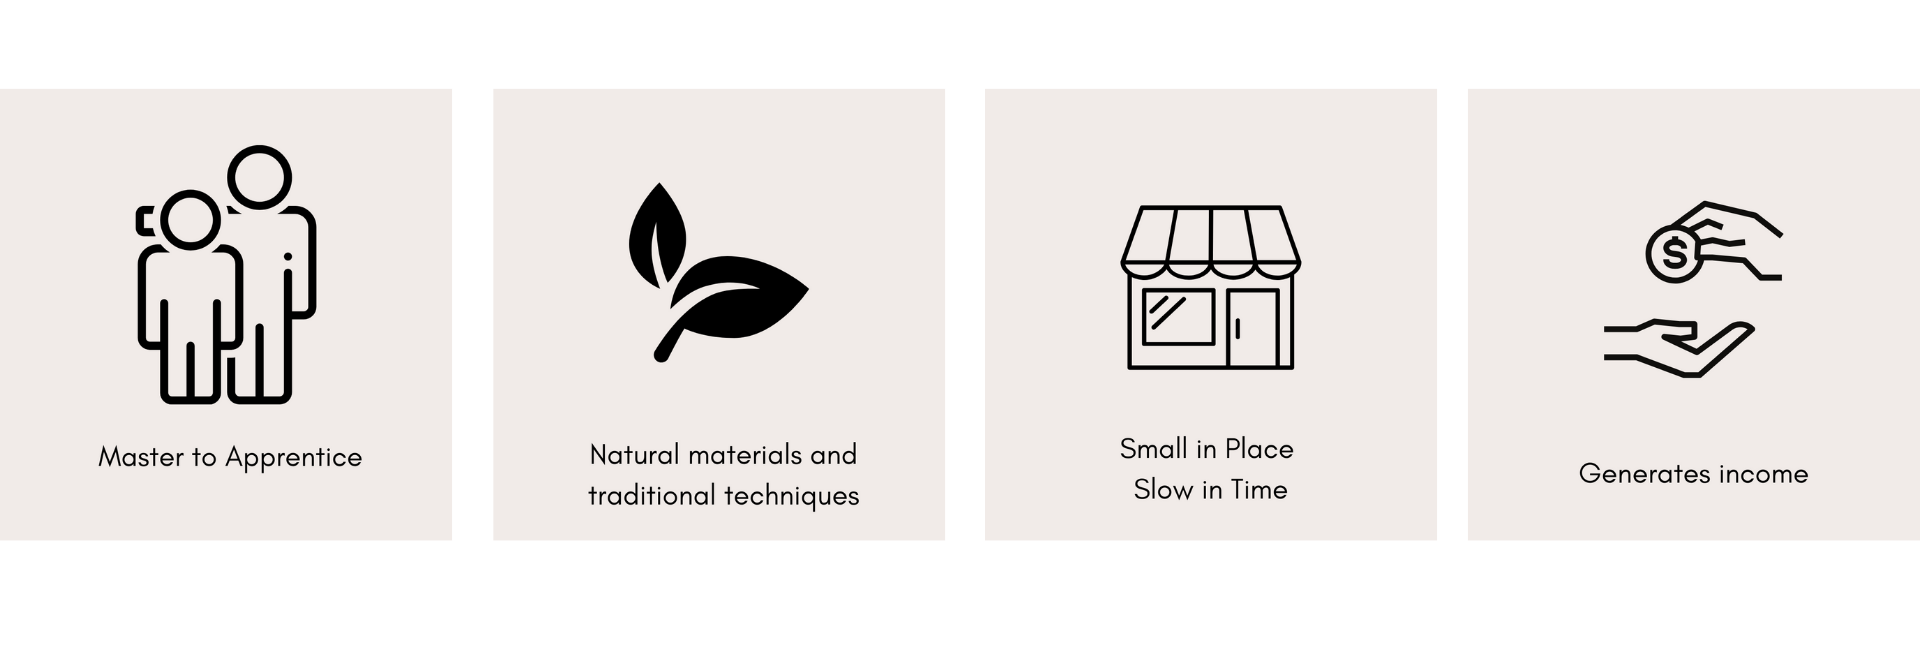 Four criteria that defines what an artisan is according to Lydia and Bilal